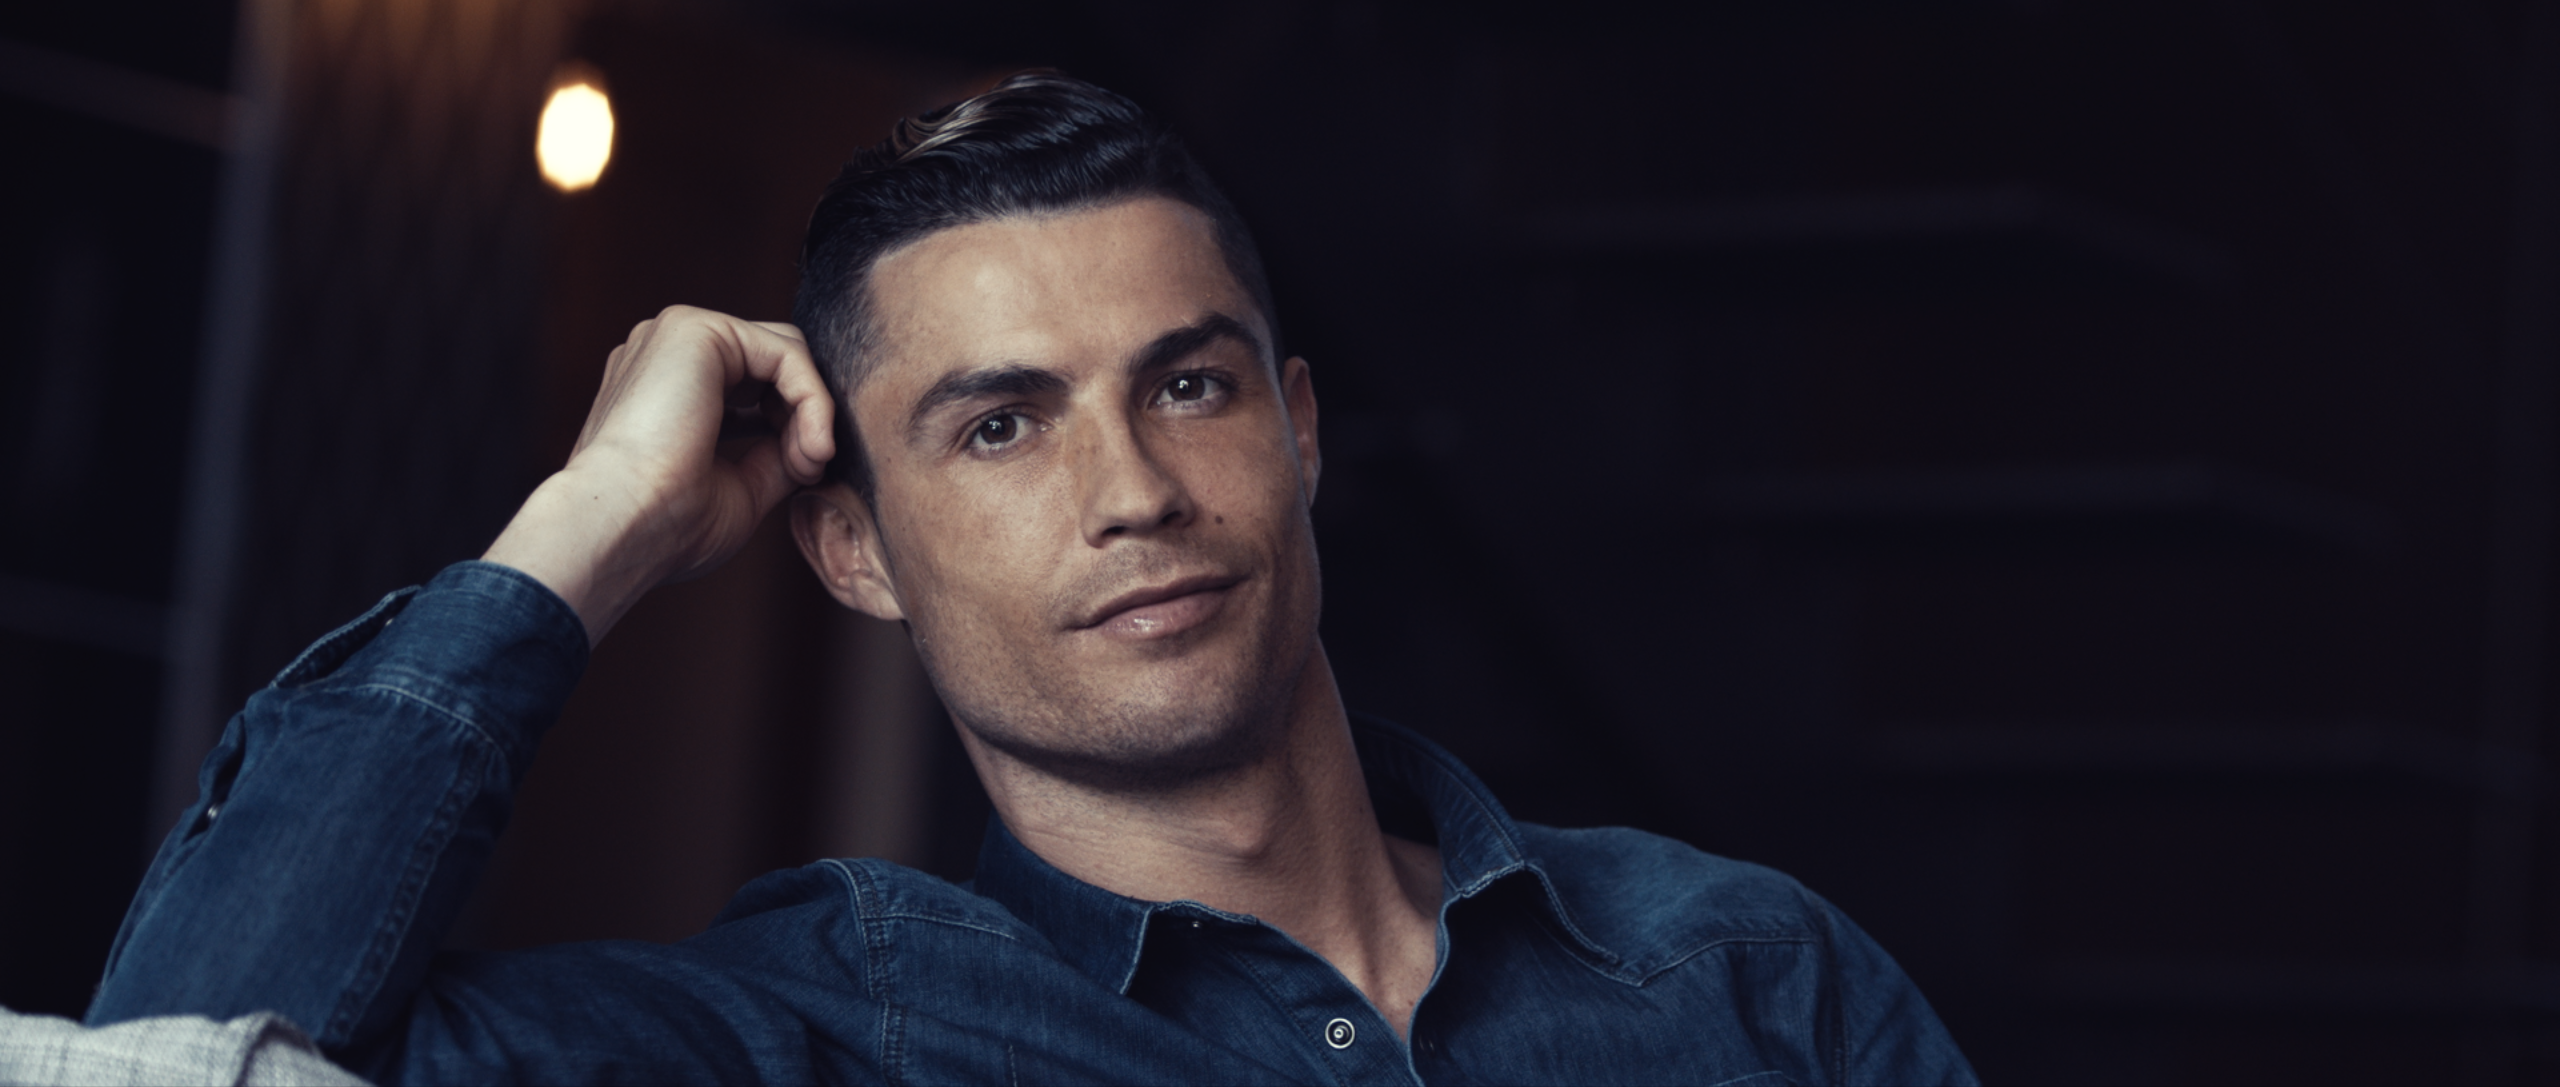 Daily Luxury | CR7 Play It Cool: Cristiano Ronaldo lança segunda fragrância